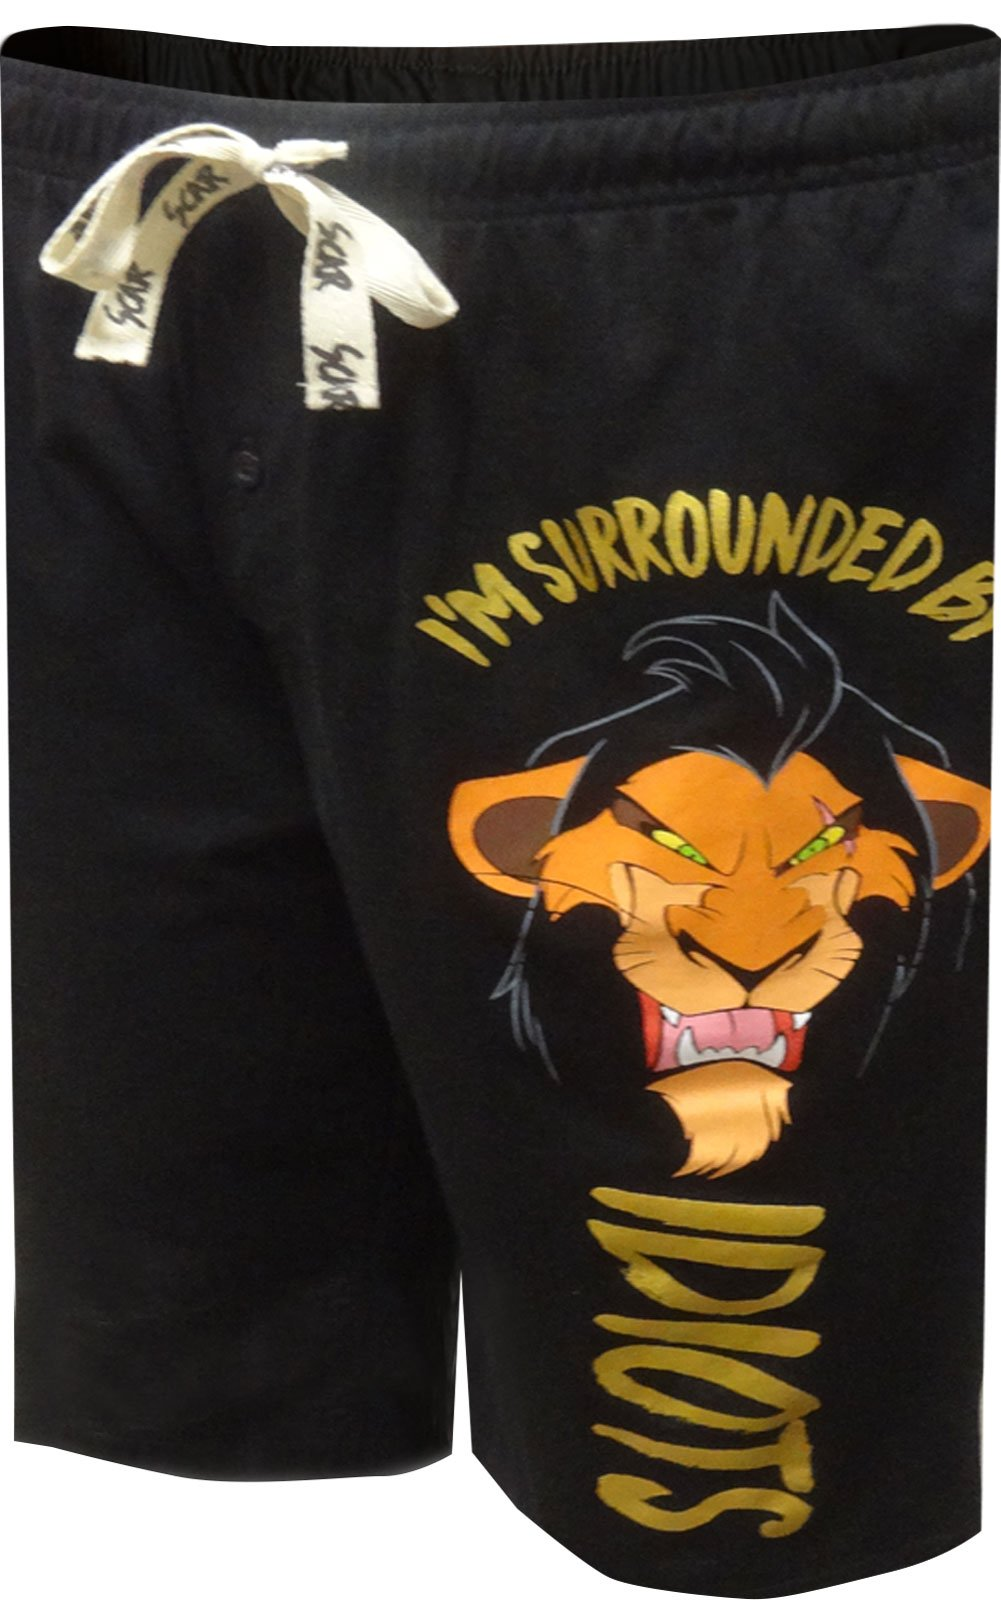 Disney Men's Lion King Scar Surrounded by Idiots Lounge Shorts (Large)